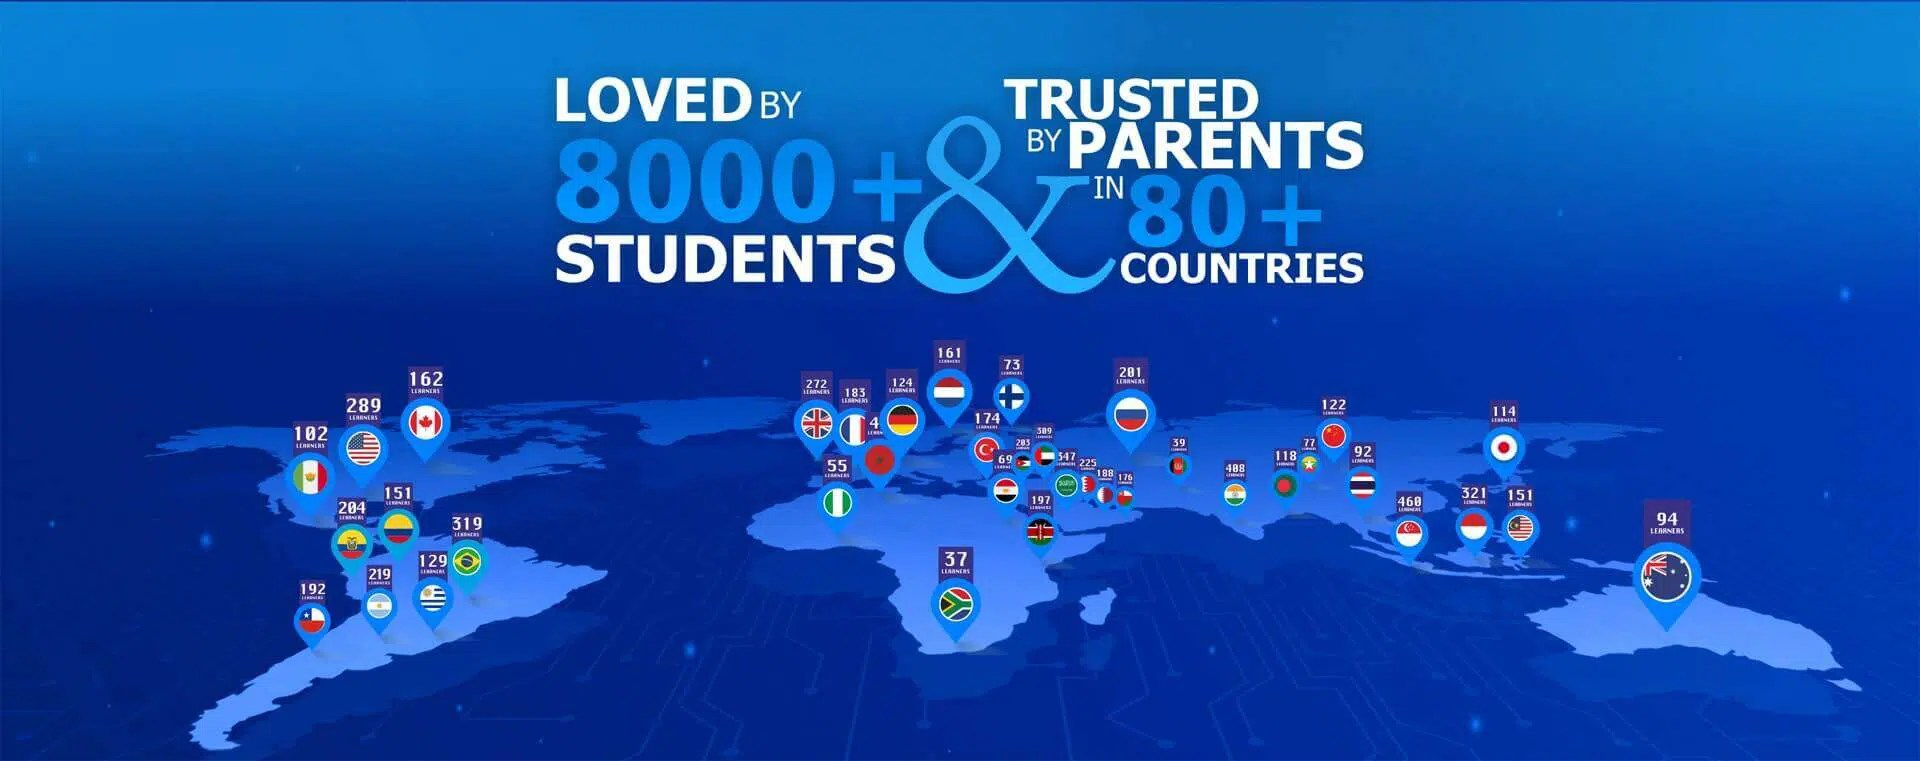 loved by 8000+ students